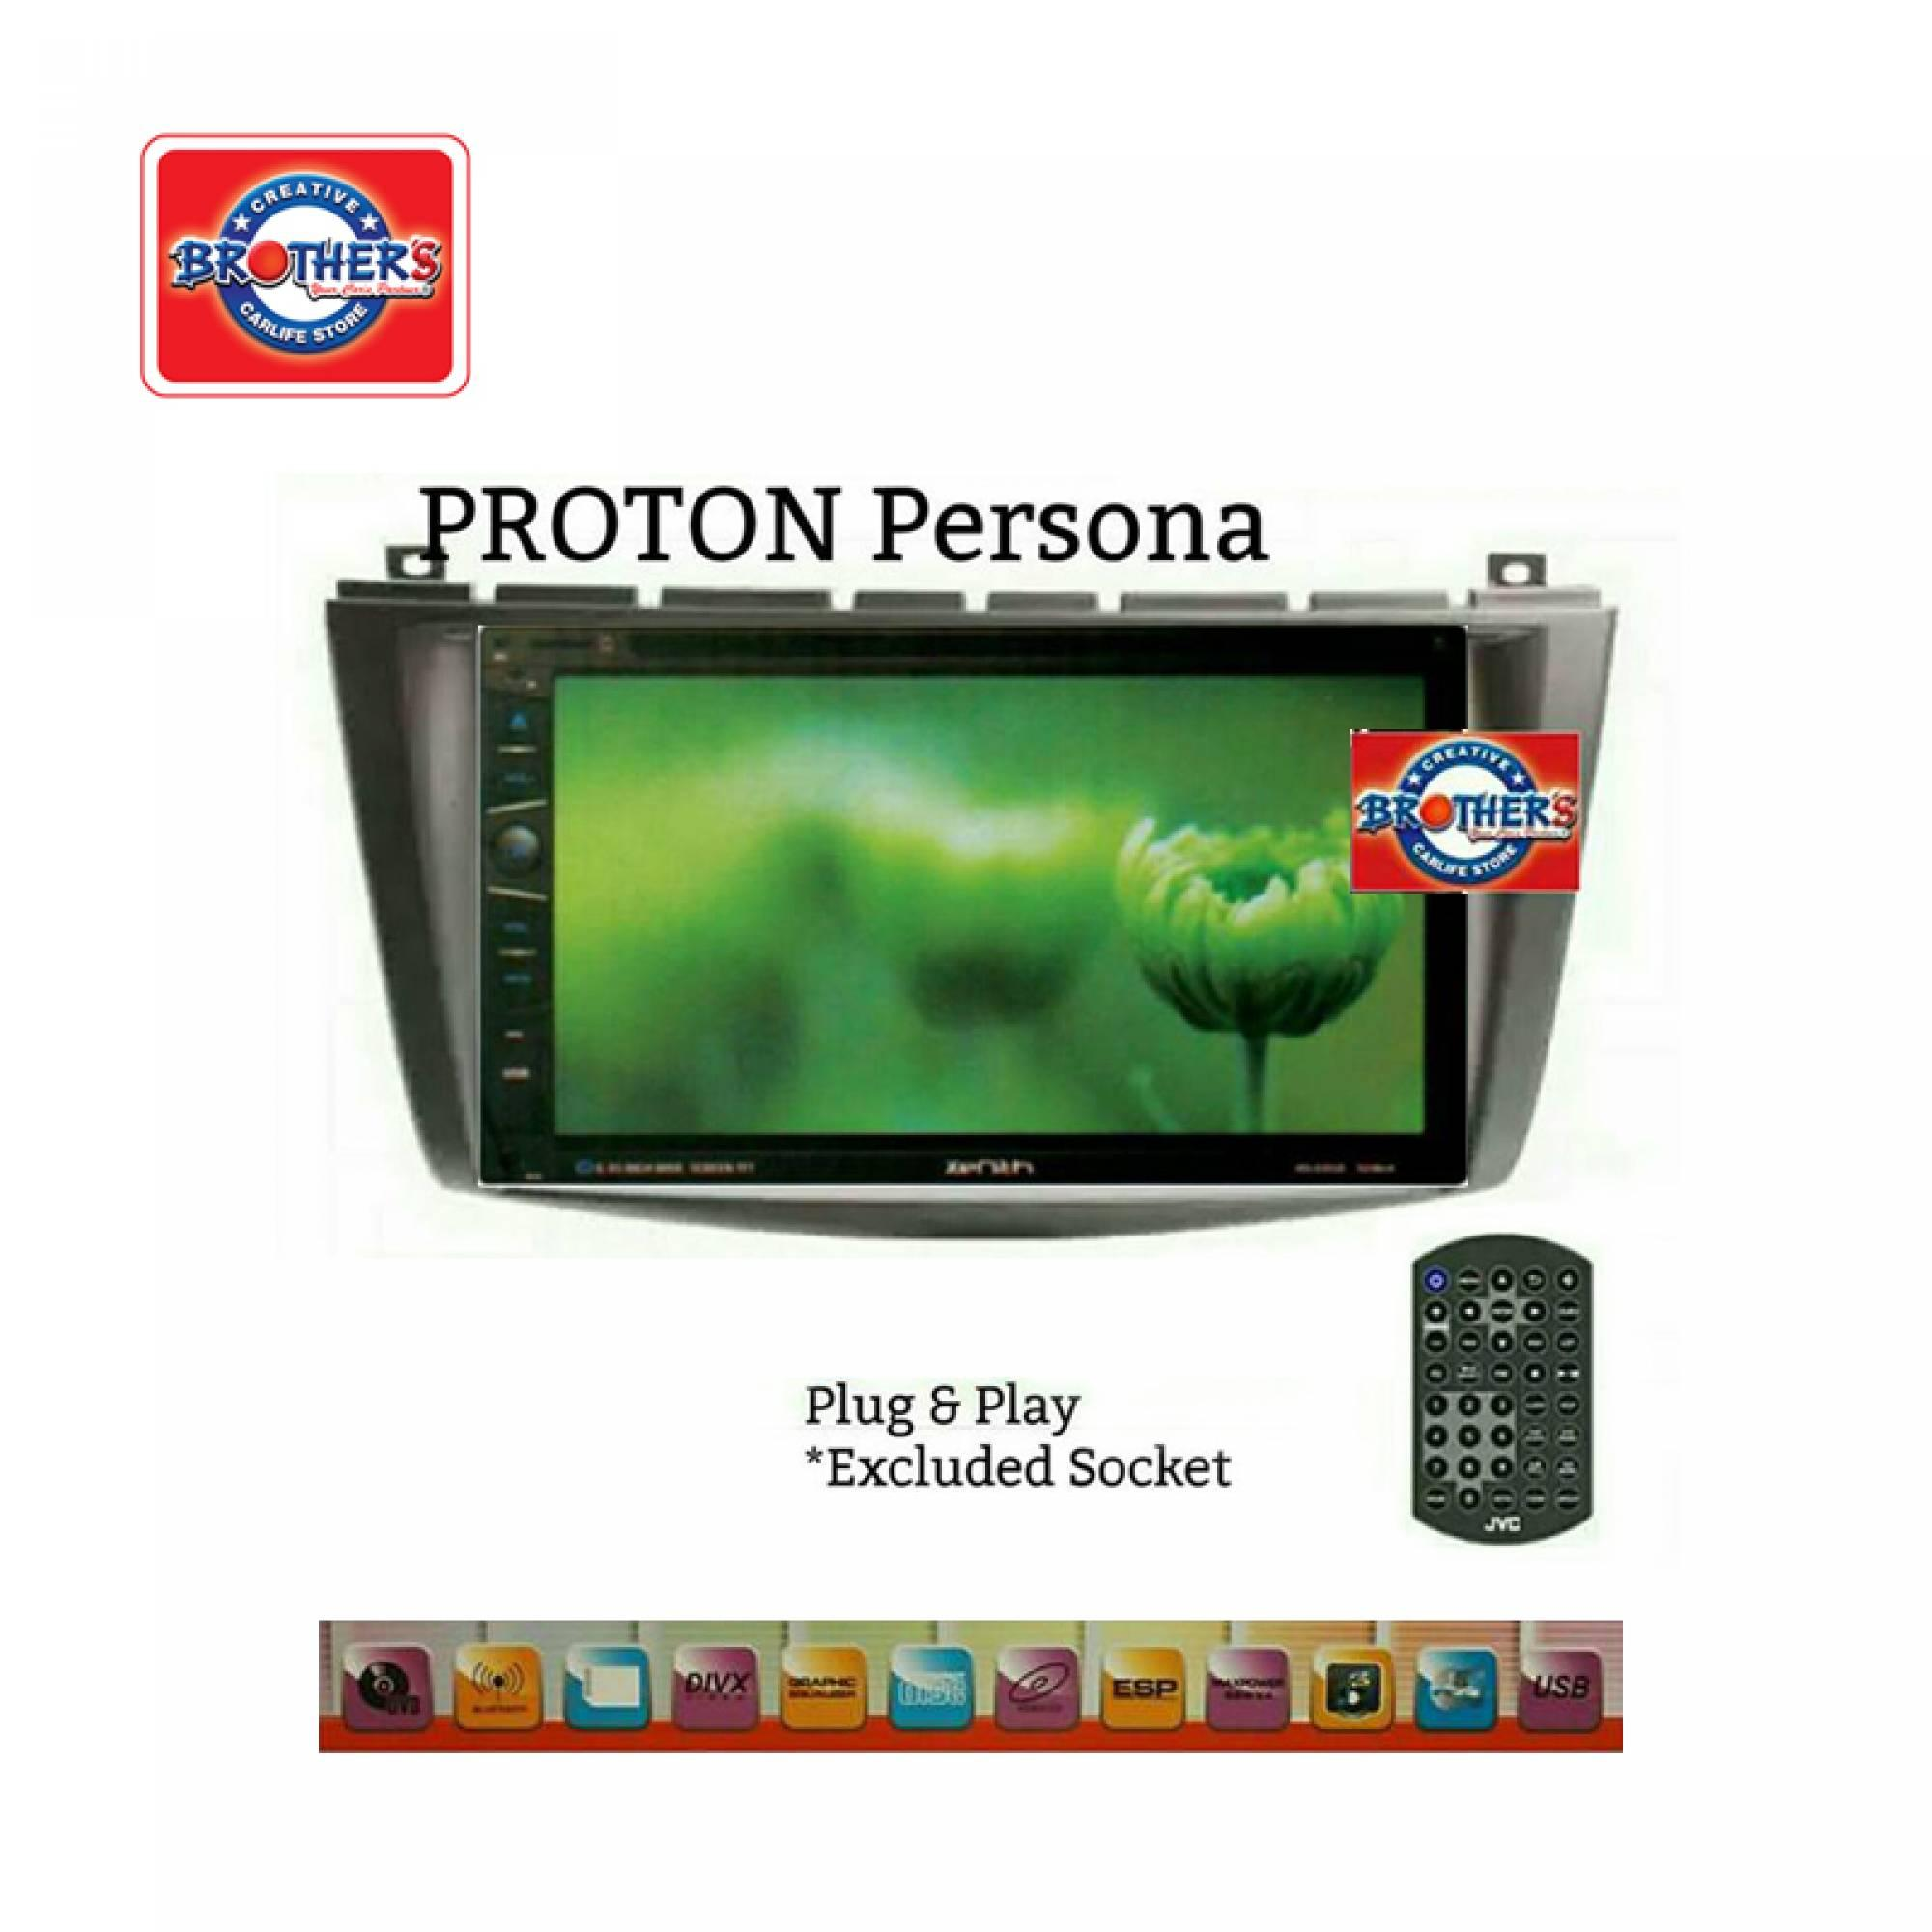 PROTON PERSONA CASING + XENITH PLAYER PLUG   PLAY  0c33193c11d